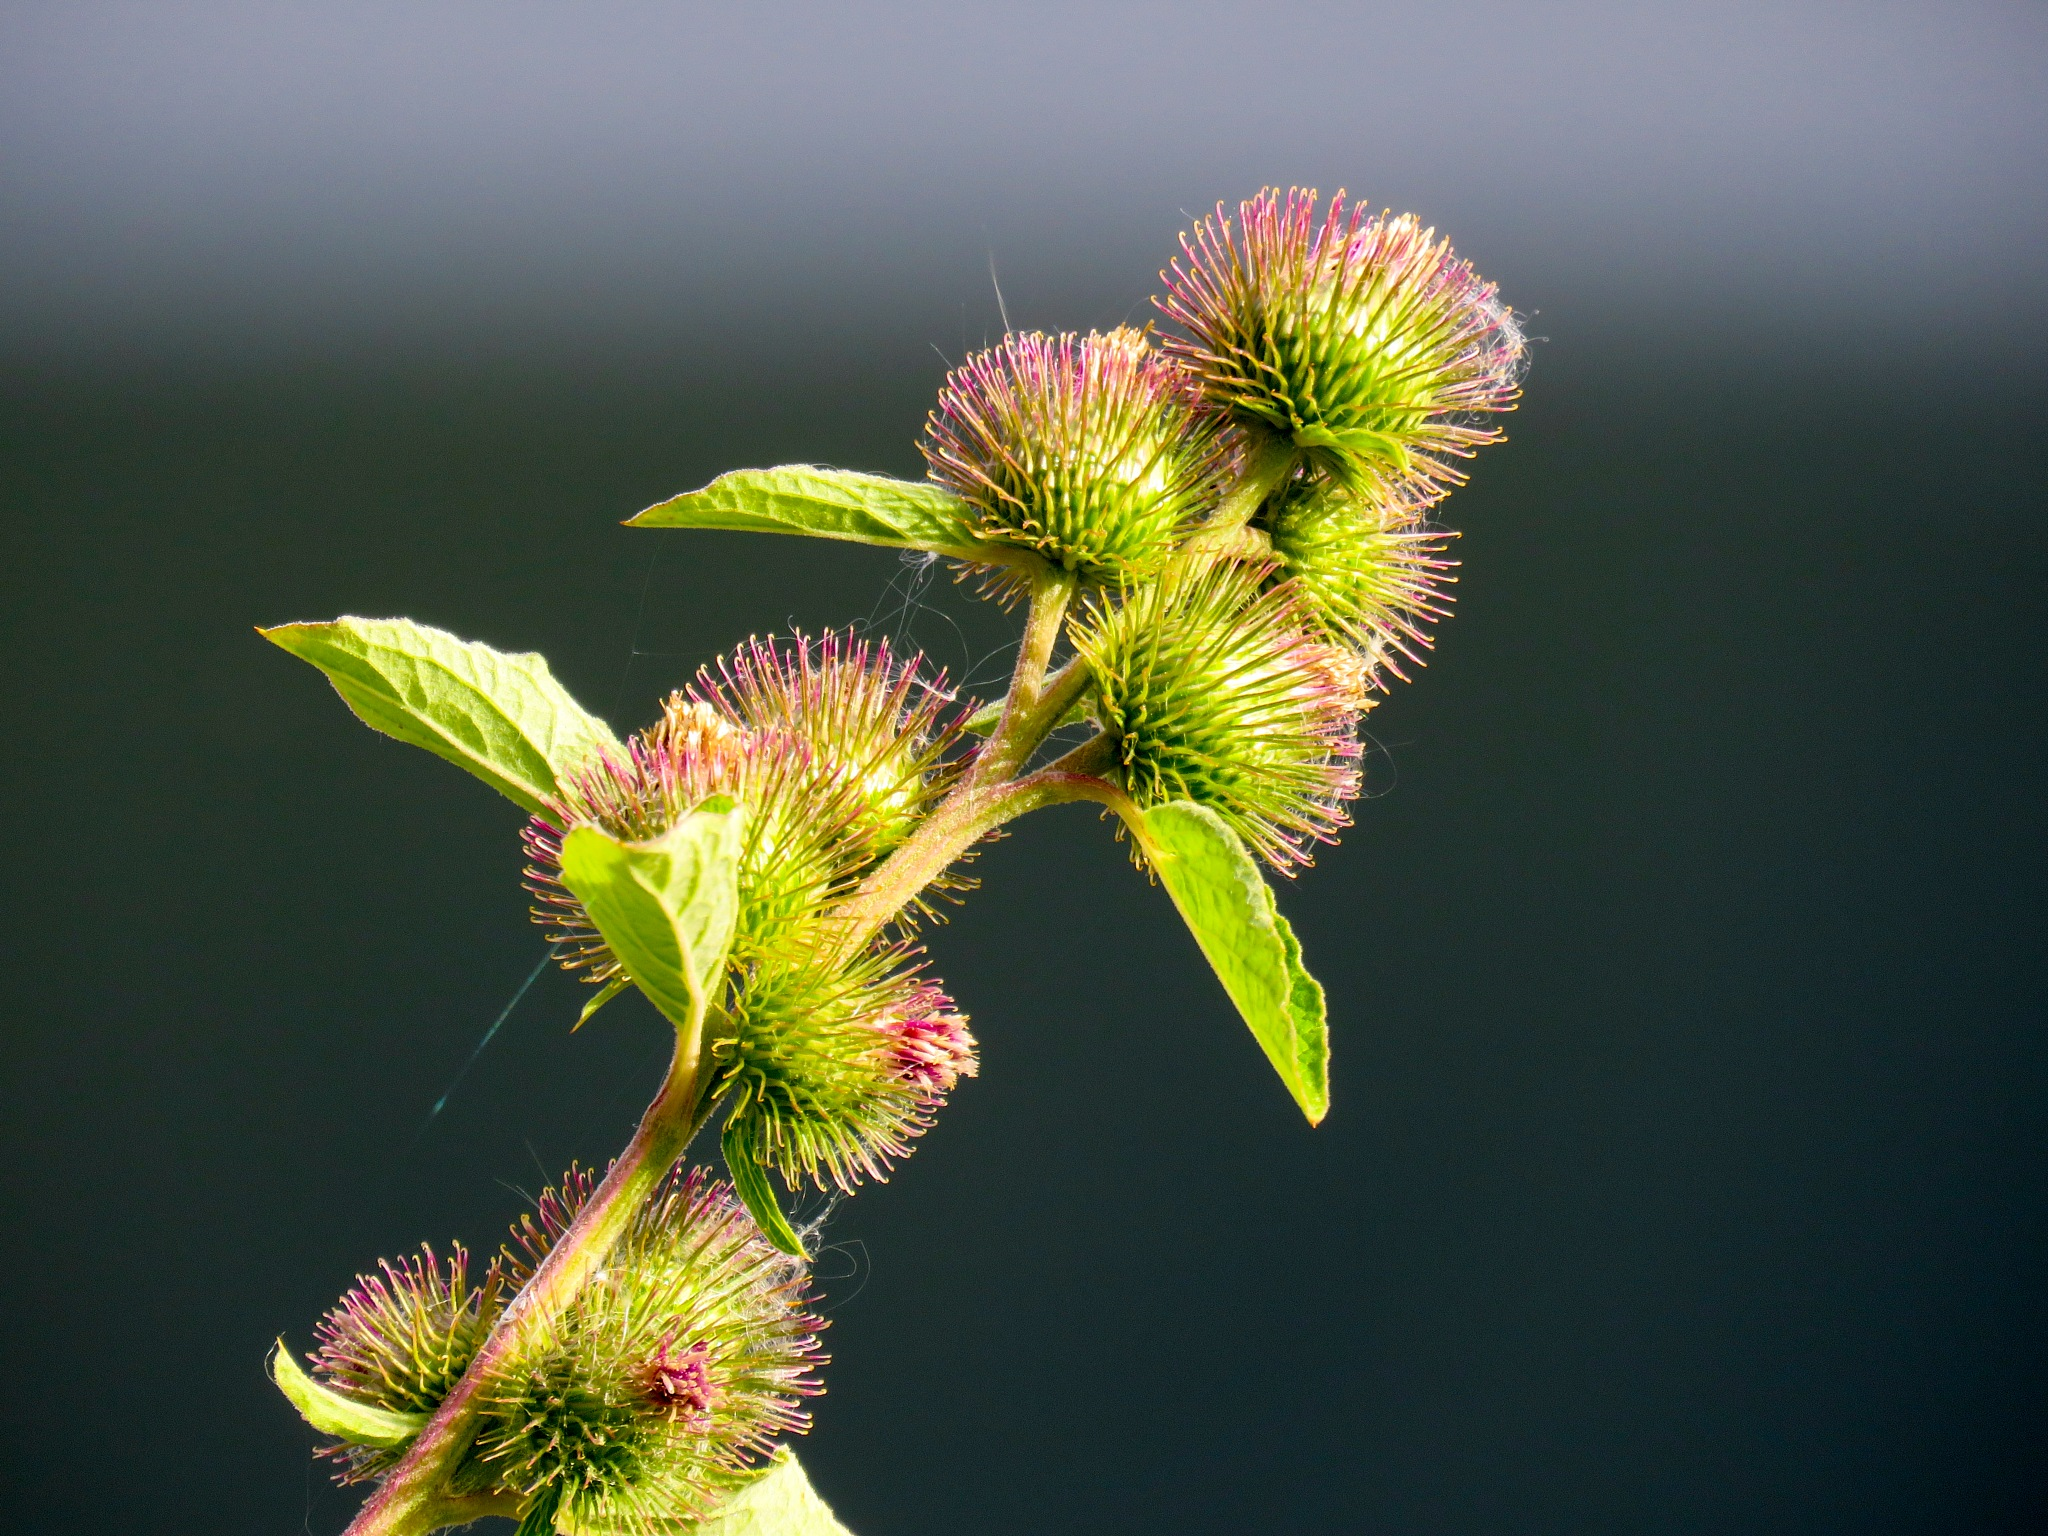 A fractious plant by Brigitte Werner